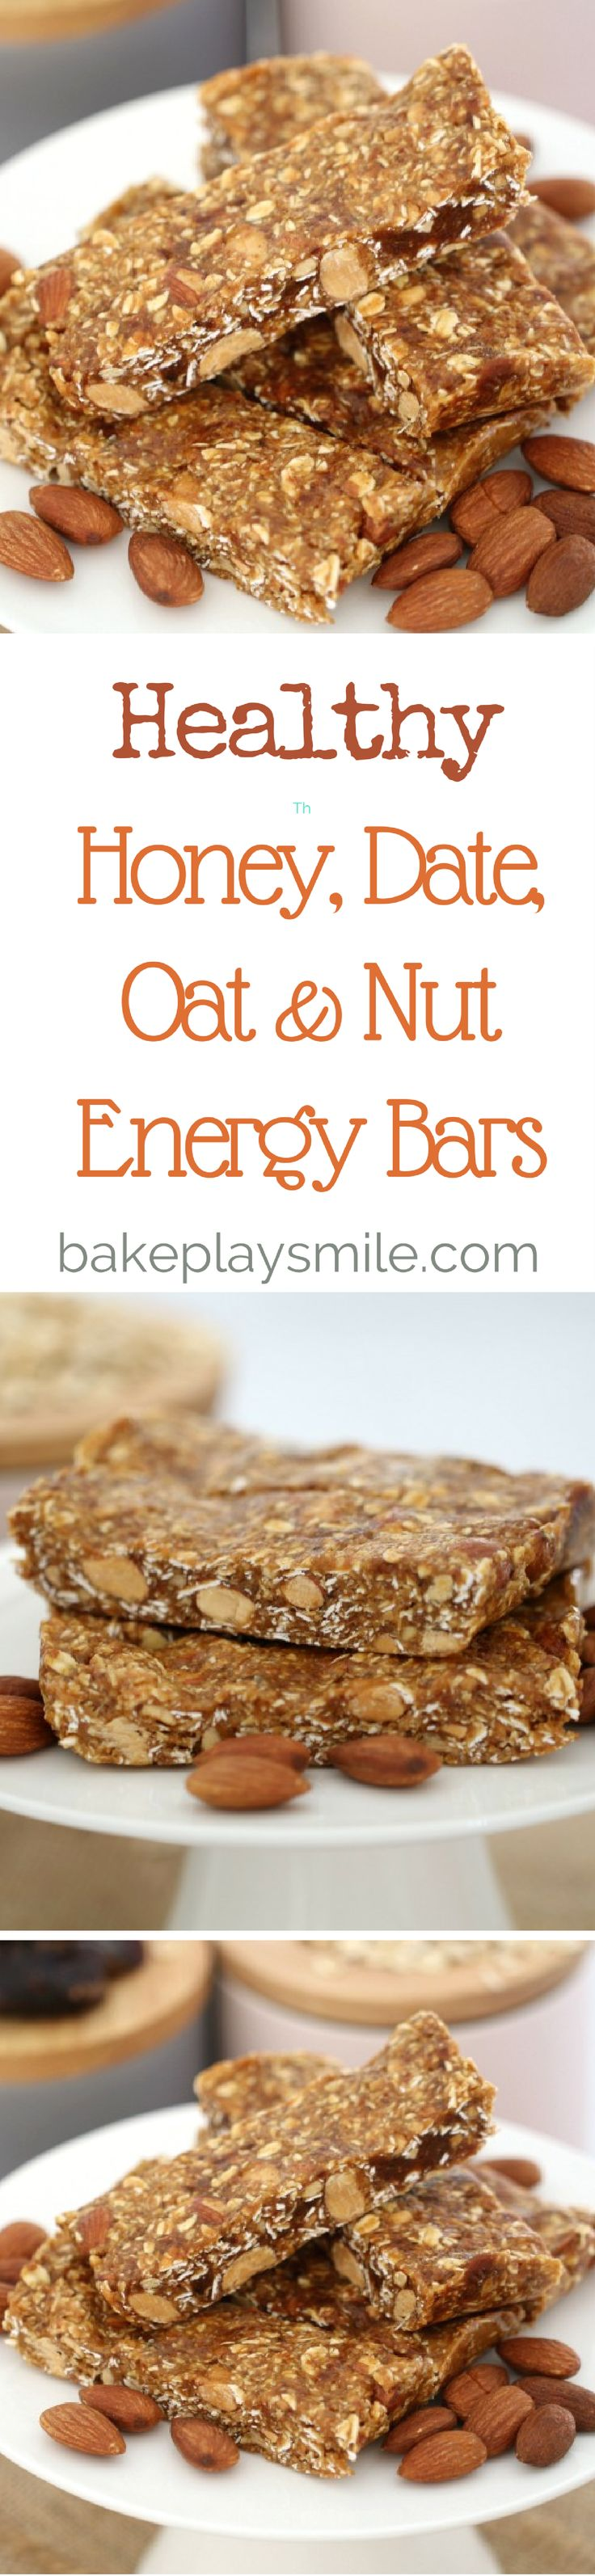 Thermomix Honey, Date, Oat & Nut Energy Bars  When you're after a healthy boost, these Honey, Date, Oat & Nut Energy Bars are just what you need. The perfect mid-afternoon pick-me-up! #healthy #energy #bars #slice #fit #workout #thermomix #conventional